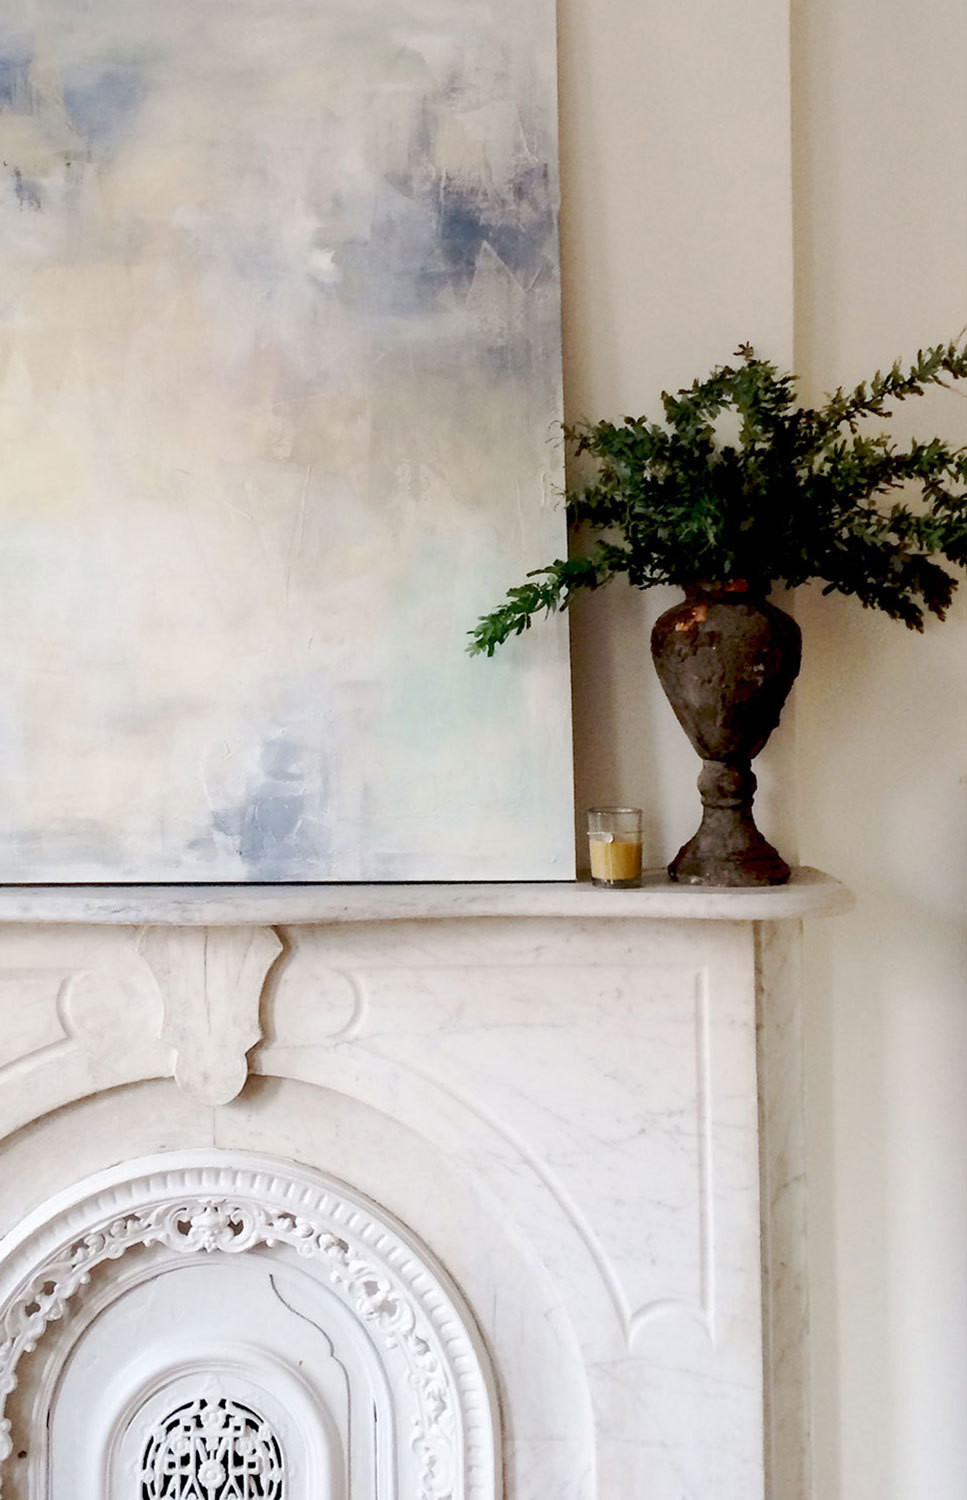 A painting by artist Julia Contacessi sits on the ornate mantel.